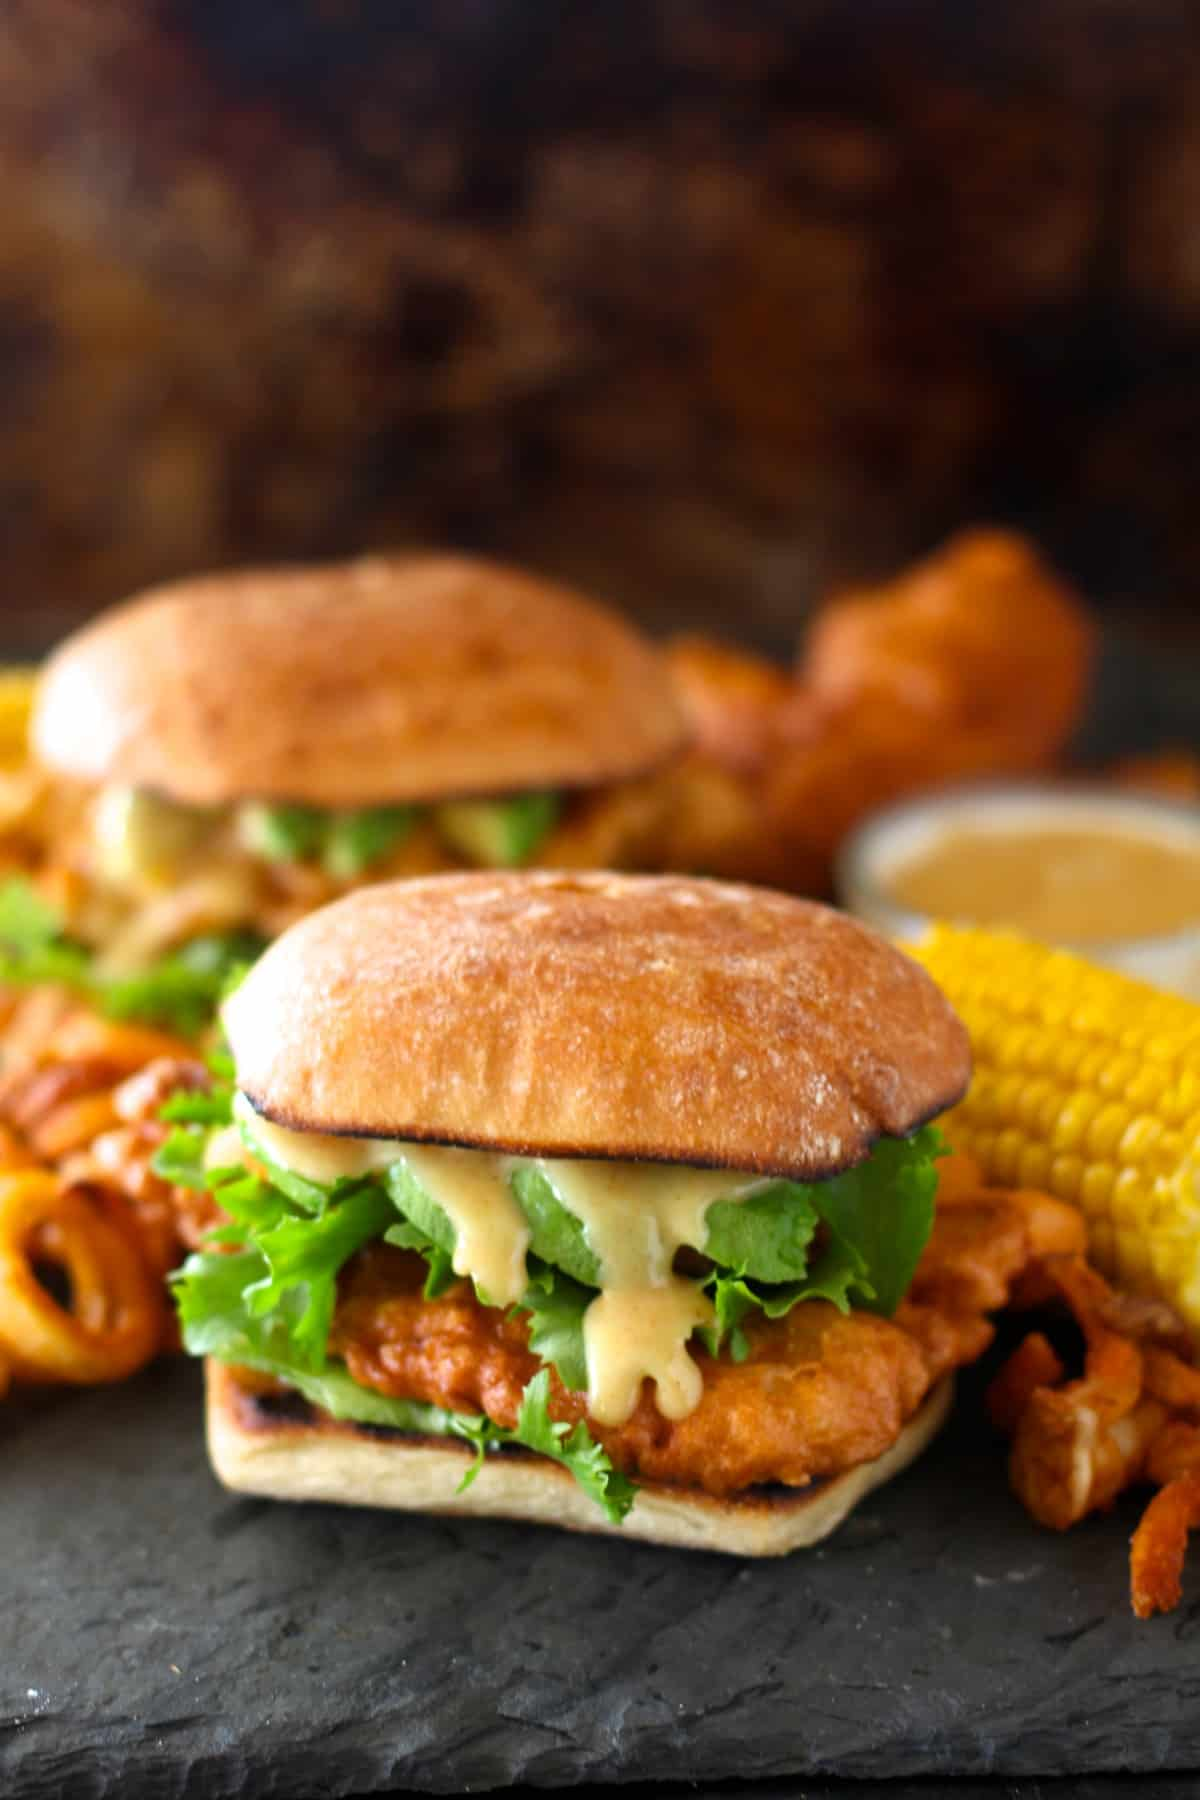 front view of copycat chili's chicken crispers in a sandwich with lettuce and honey mustard